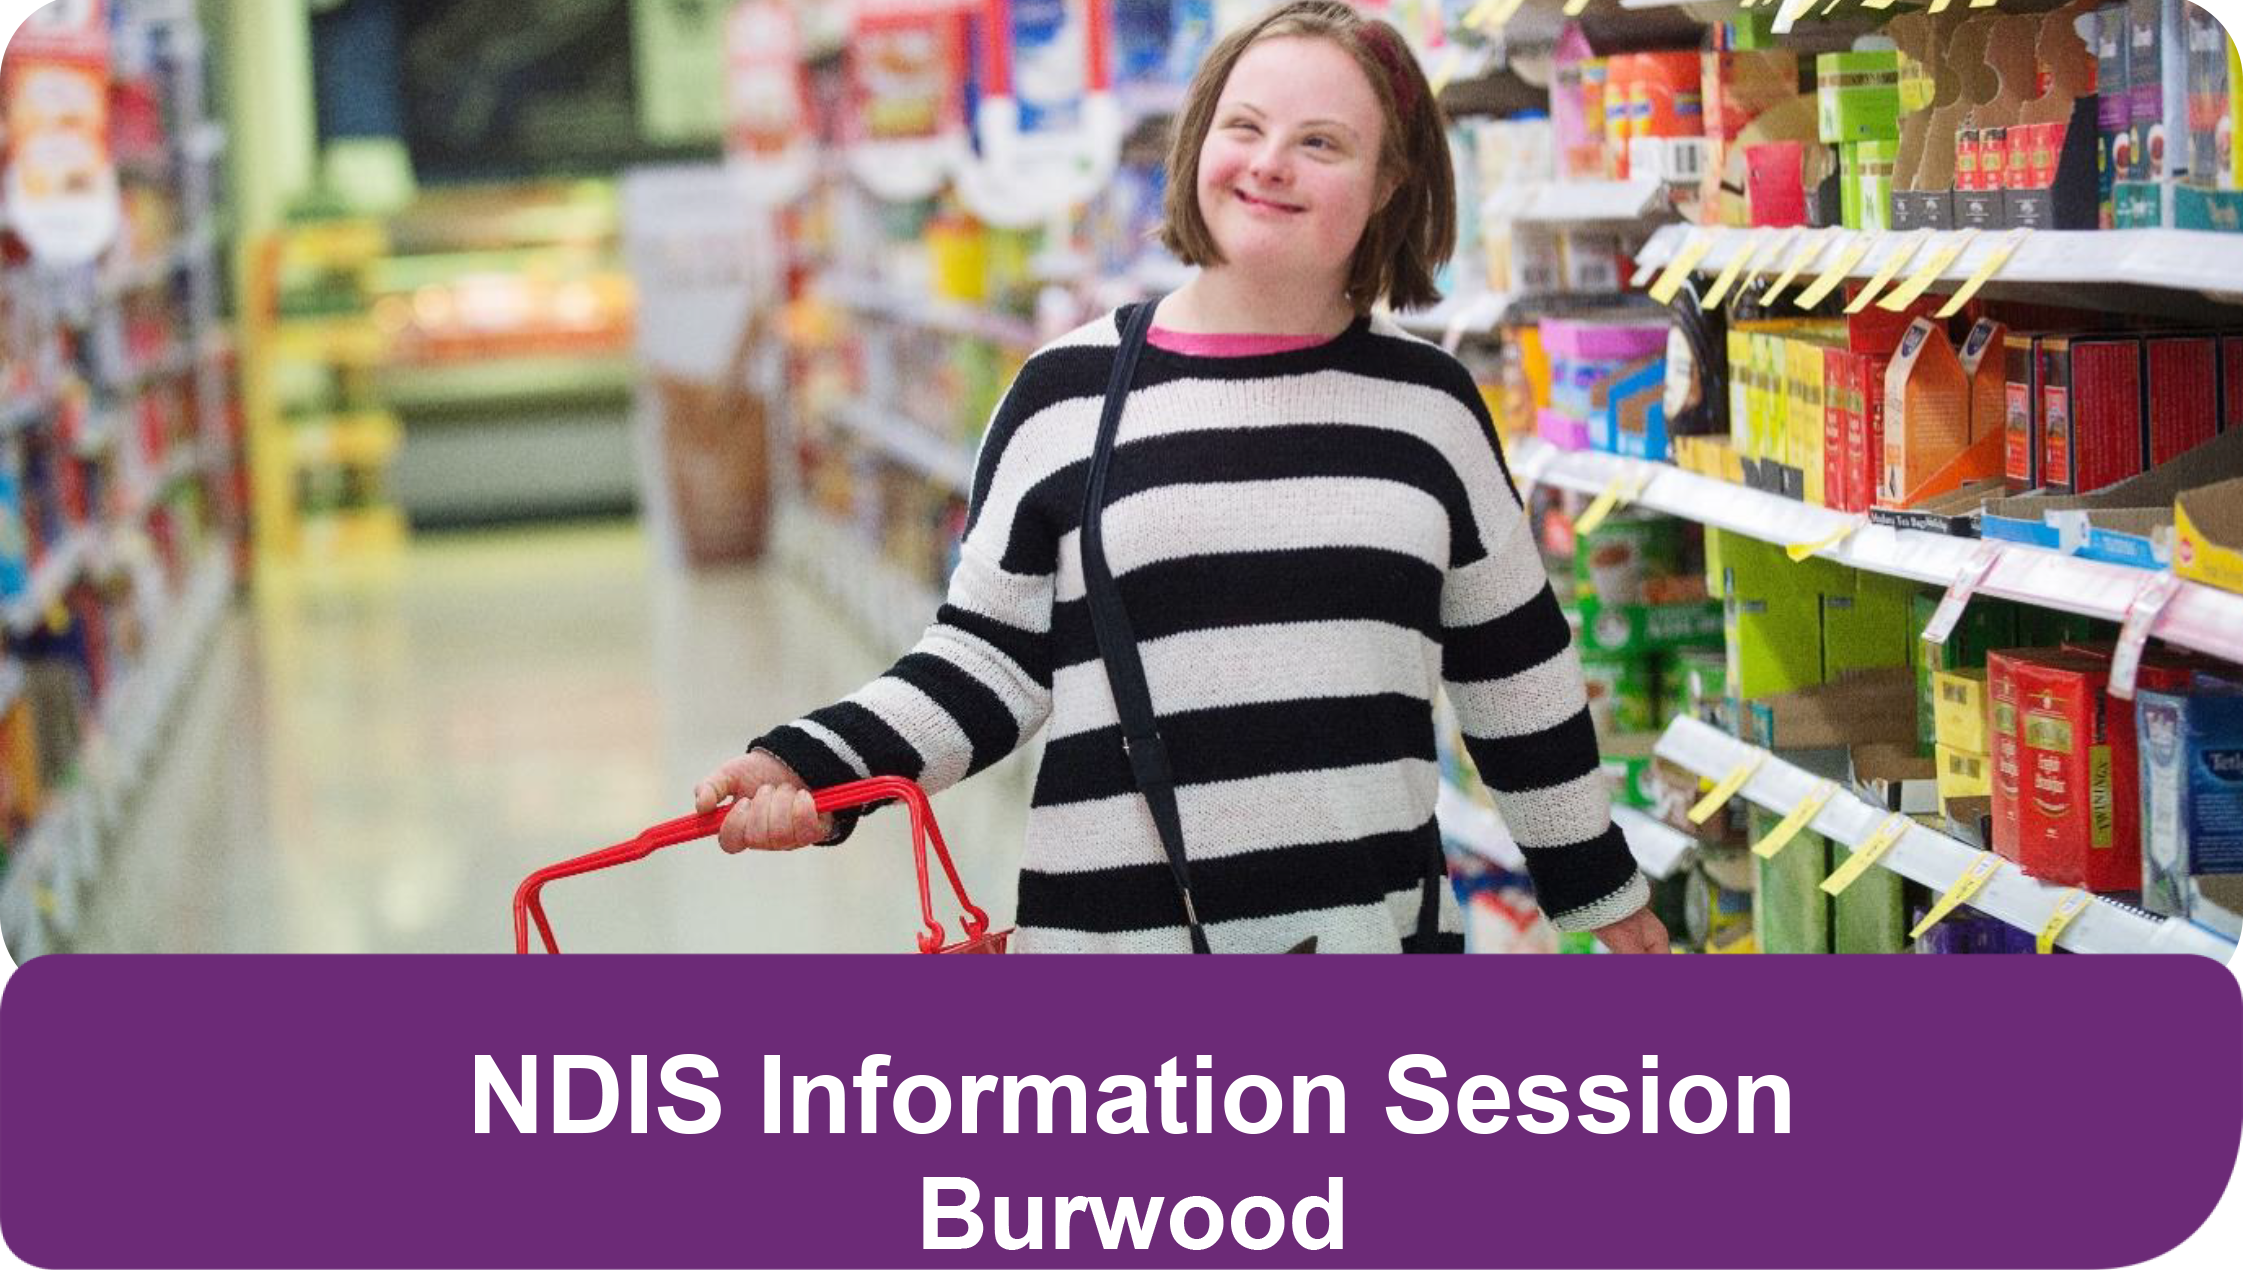 NDIS Community Information Session - Burwood 27.04.2017.png